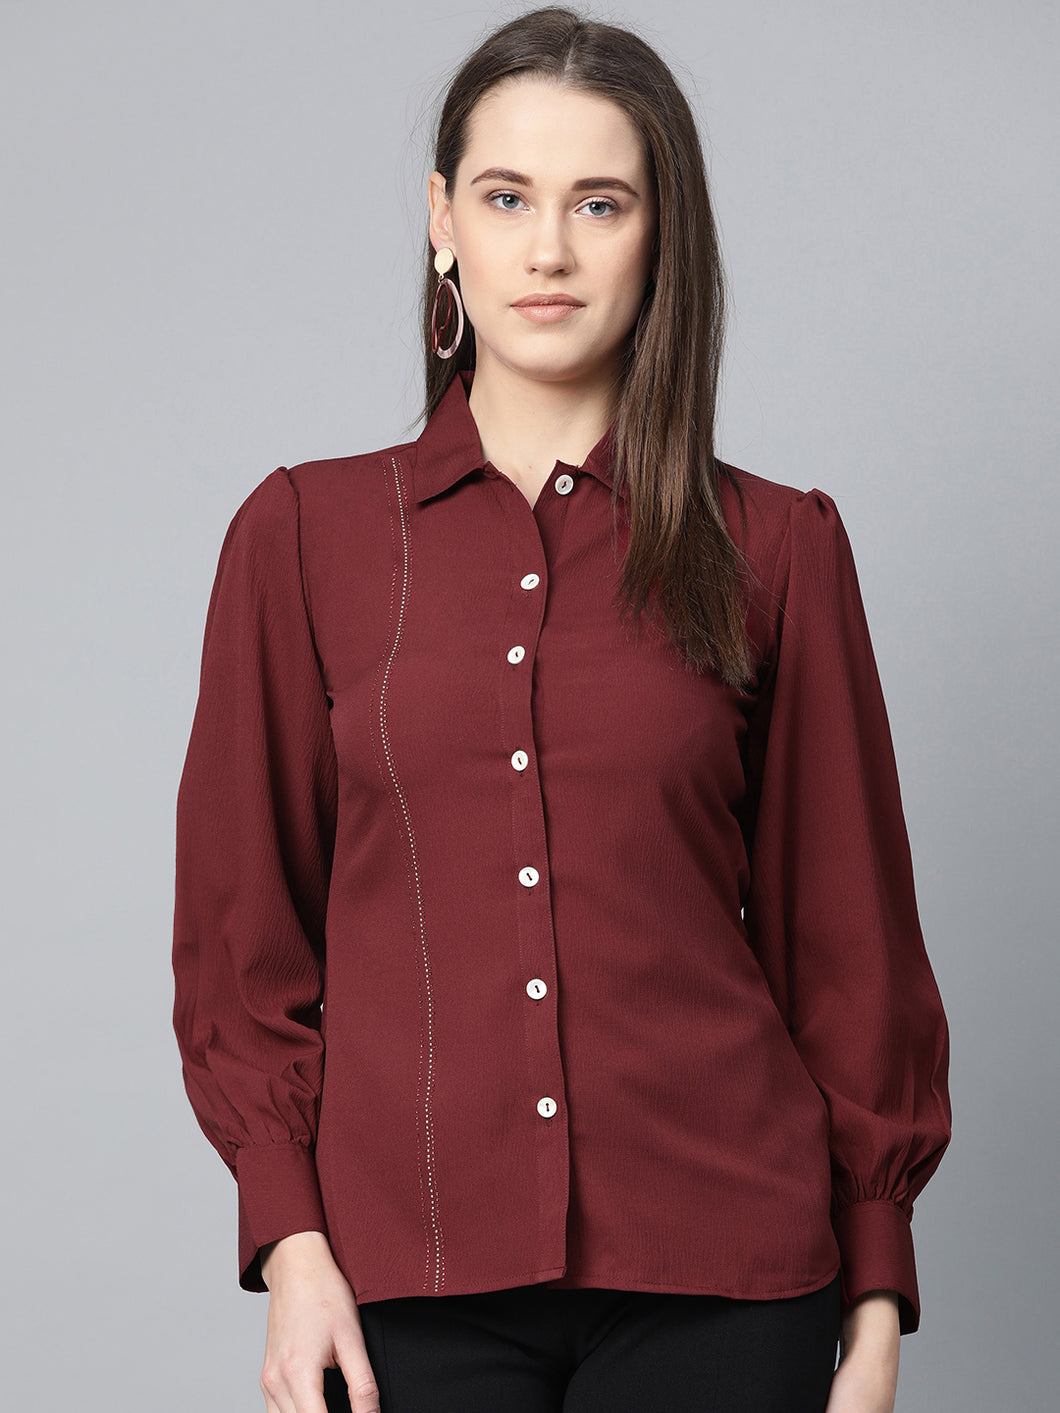 Jompers Women Maroon Regular Fit Crinkled Effect Casual Shirt